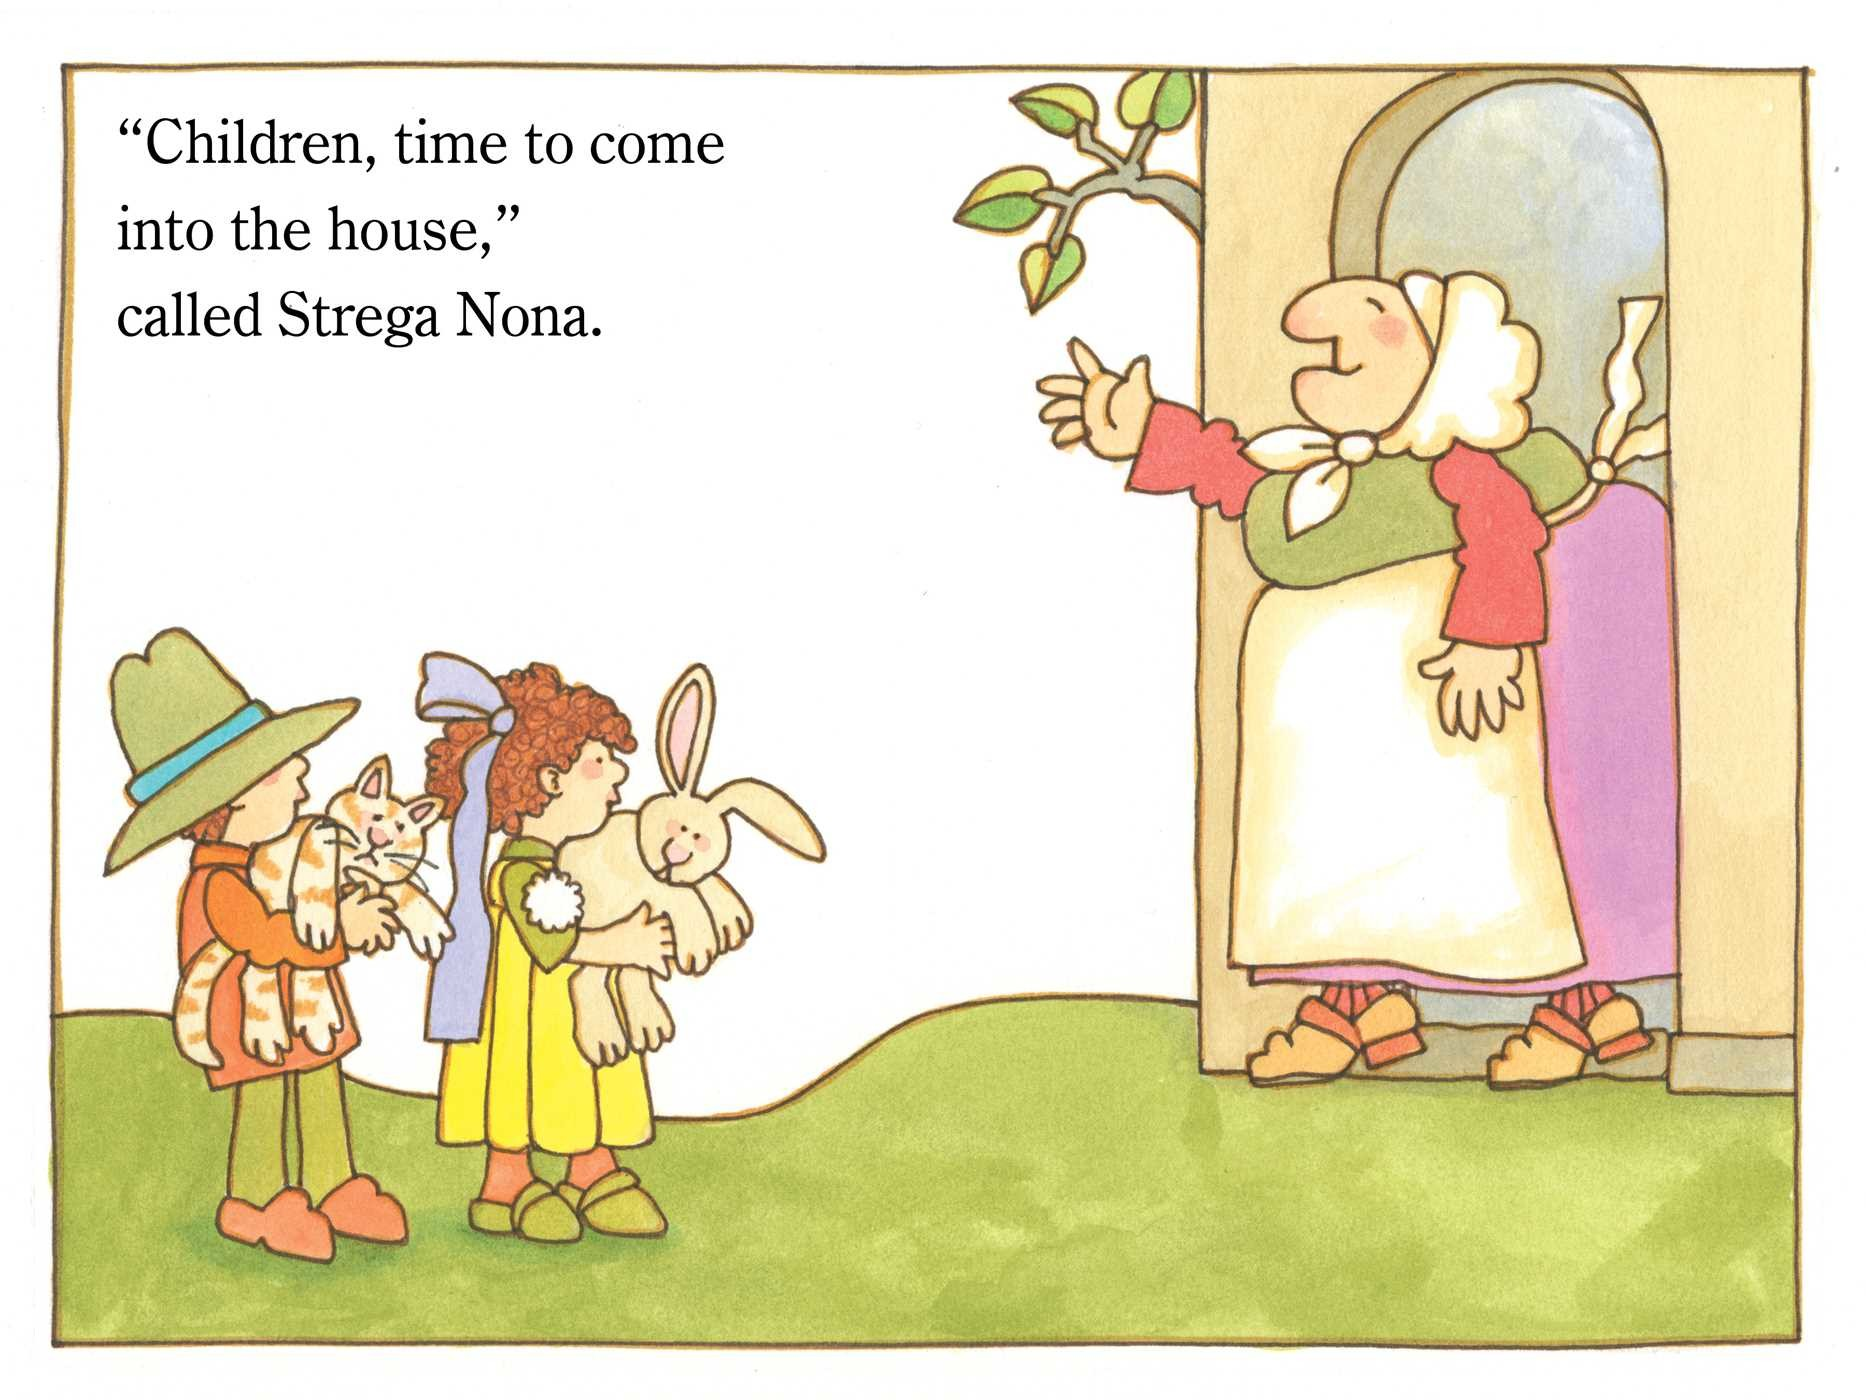 Strega nona and the twins 9781481481373.in06